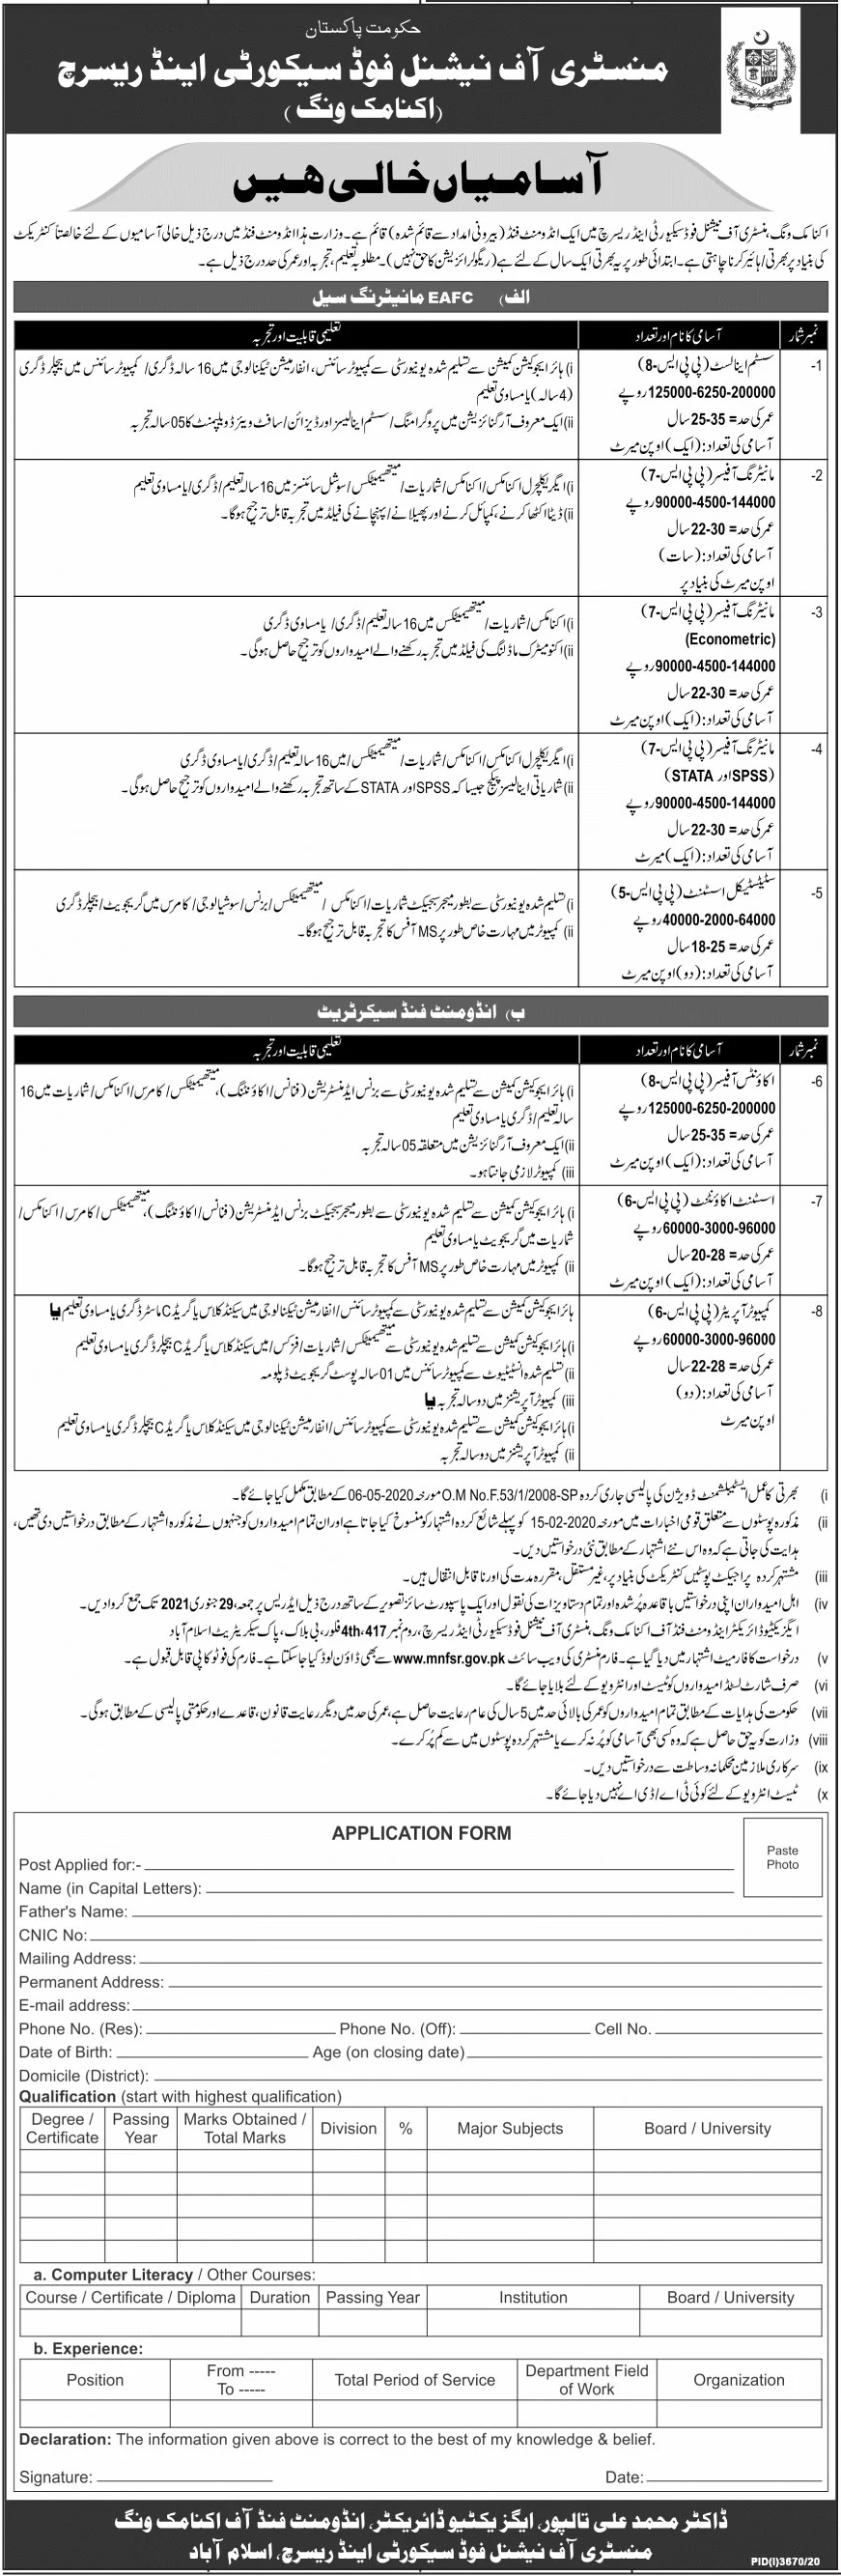 Government of Pakistan Ministry of National Food Security & Research Jobs January 2021